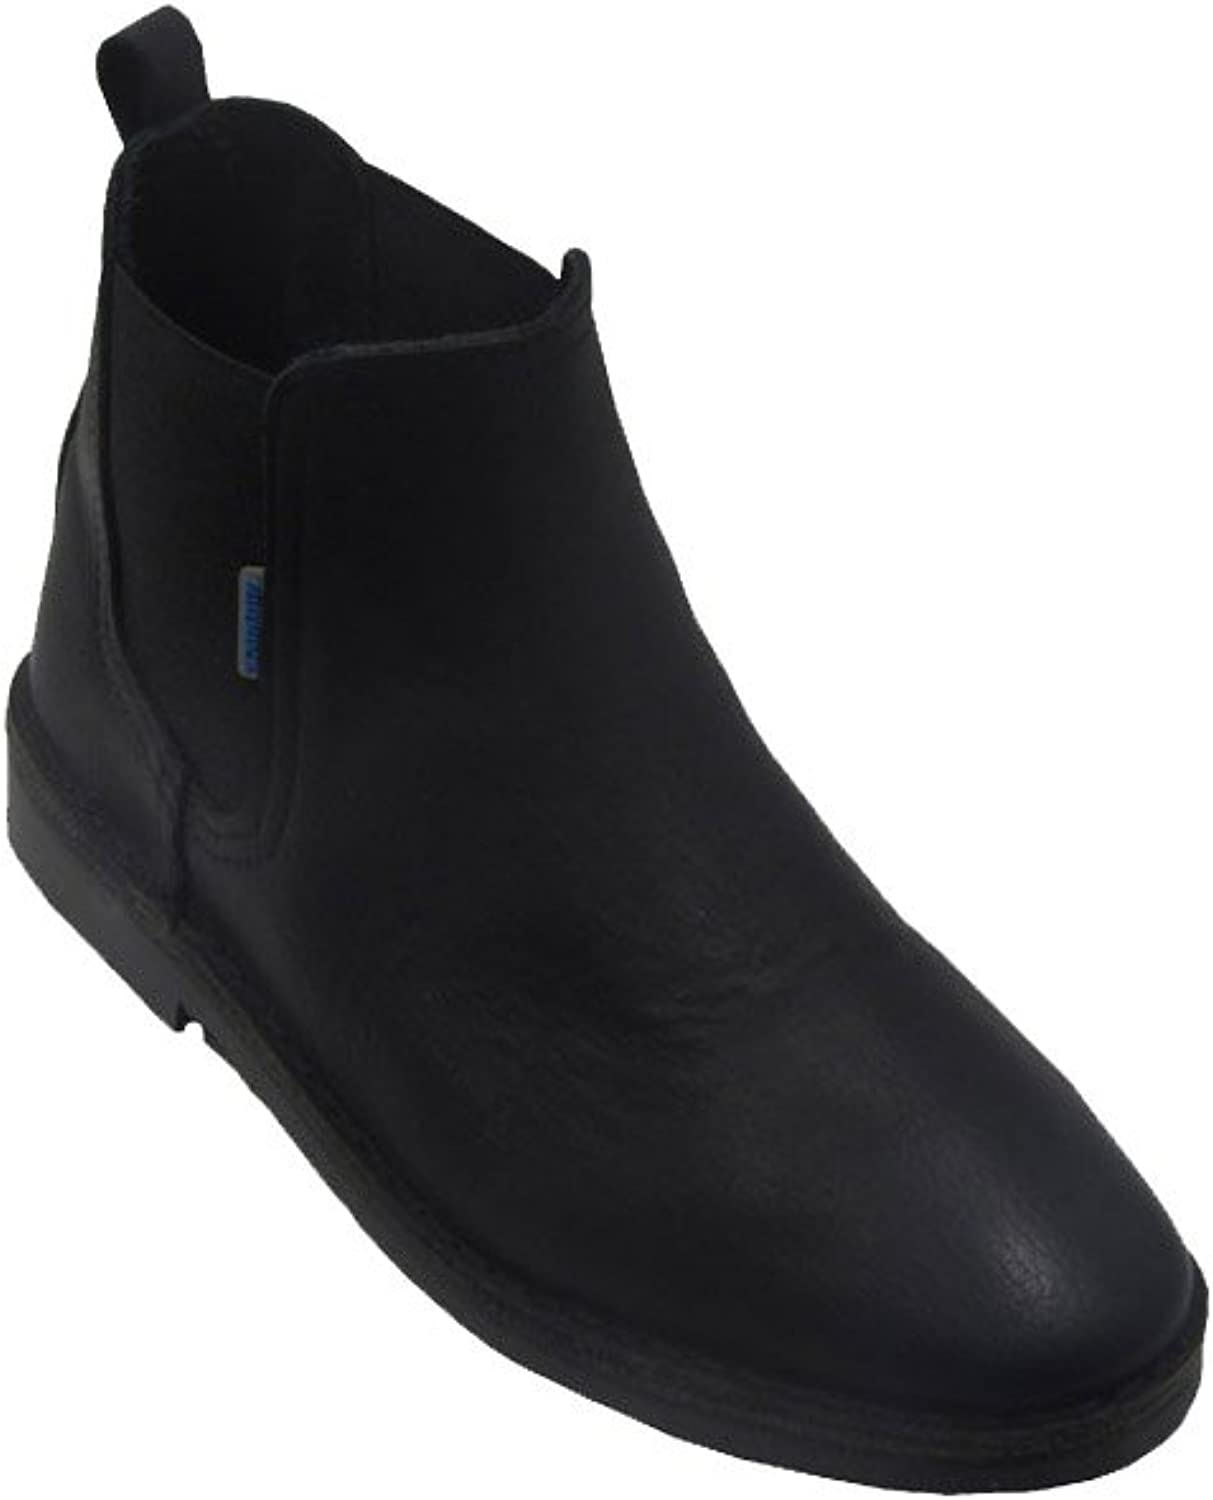 La Auténtica B324FPN - Chelsea Boots Leather, Unisex Adult, Black Leather